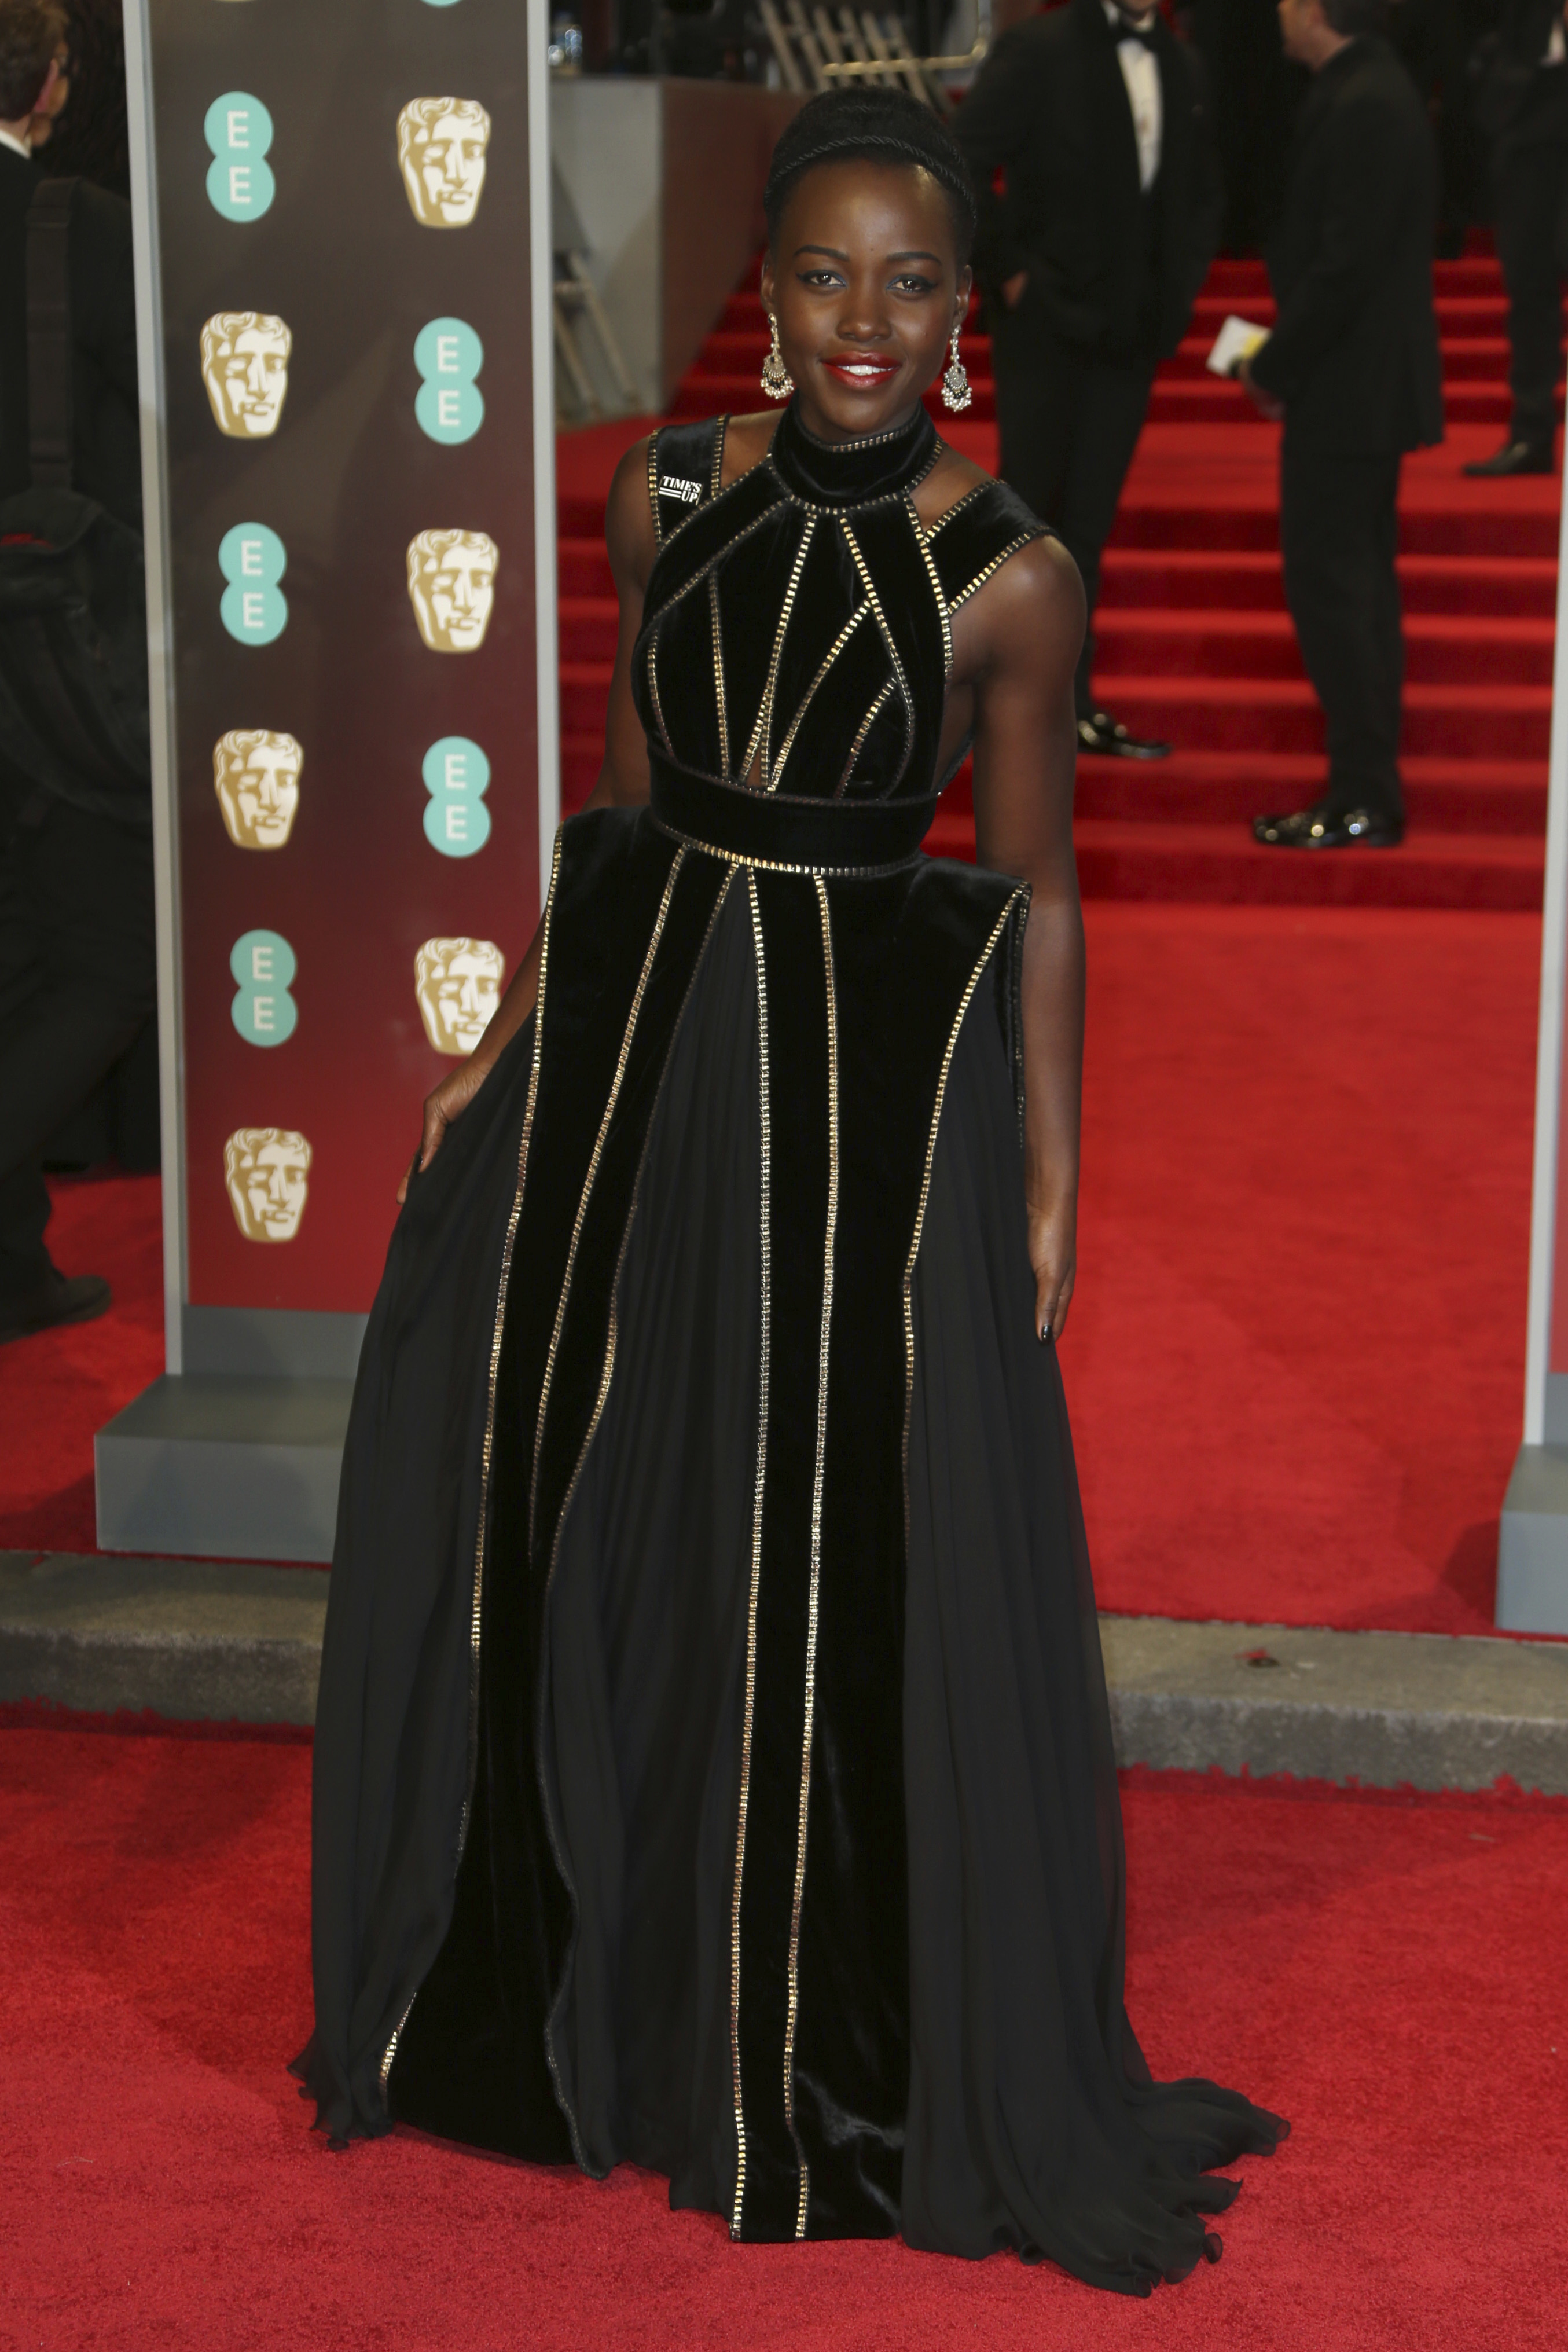 <div class='meta'><div class='origin-logo' data-origin='AP'></div><span class='caption-text' data-credit='Joel C Ryan/Invision/AP'>Actress Lupita Nyong'o poses for photographers upon arrival at the BAFTA 2018 Awards in London, Sunday, Feb. 18, 2018.</span></div>